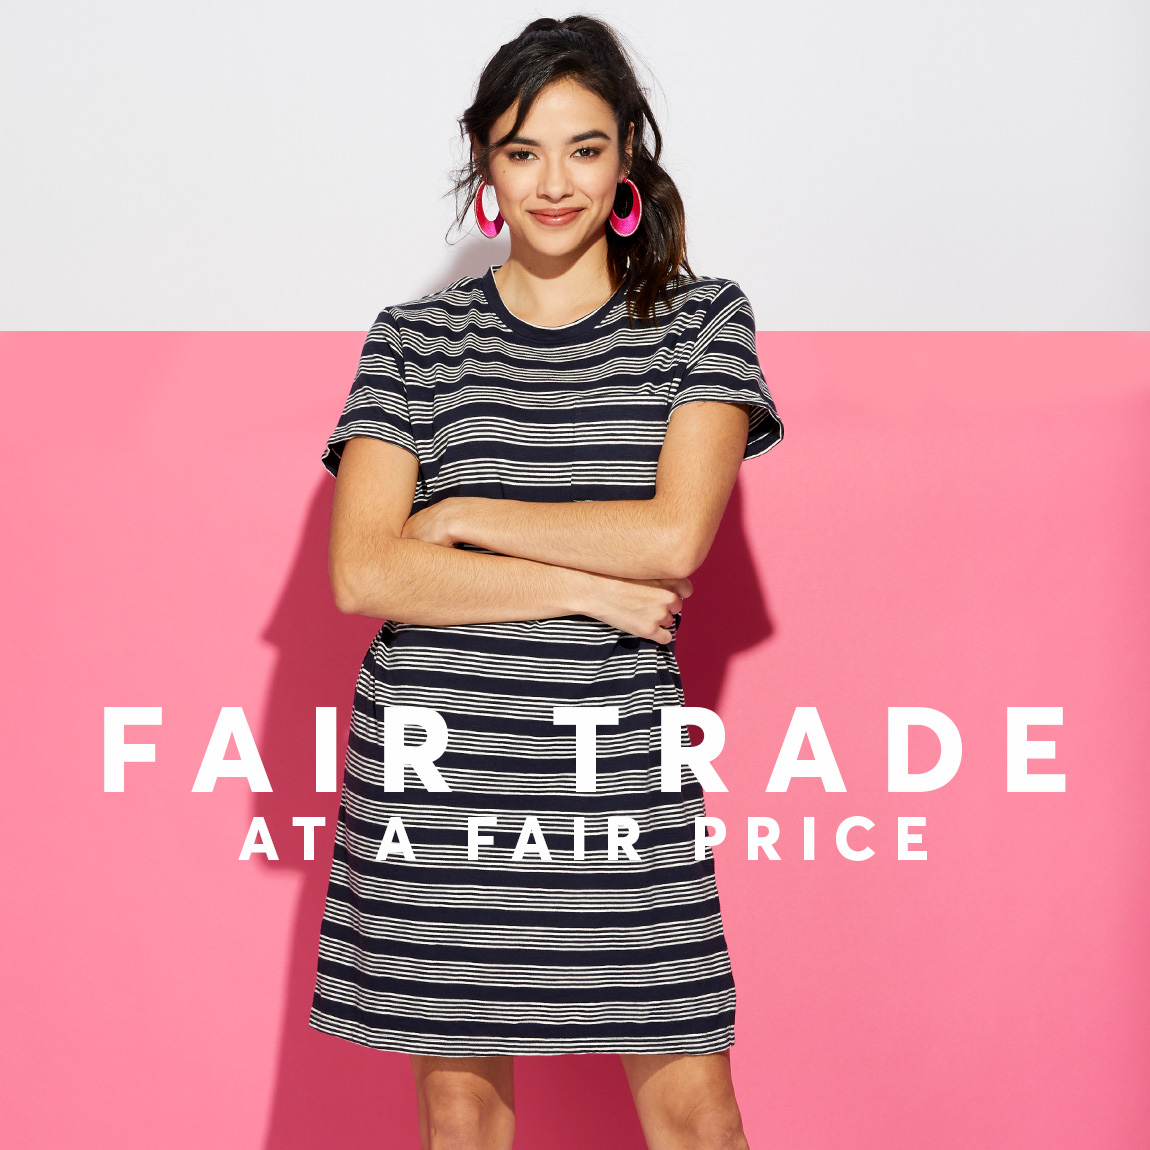 cd18d2732 It shouldn't cost more to do the right thing. Pact clothing is made by  people who receive better wages and working conditions in Fair Trade  Certified™ ...